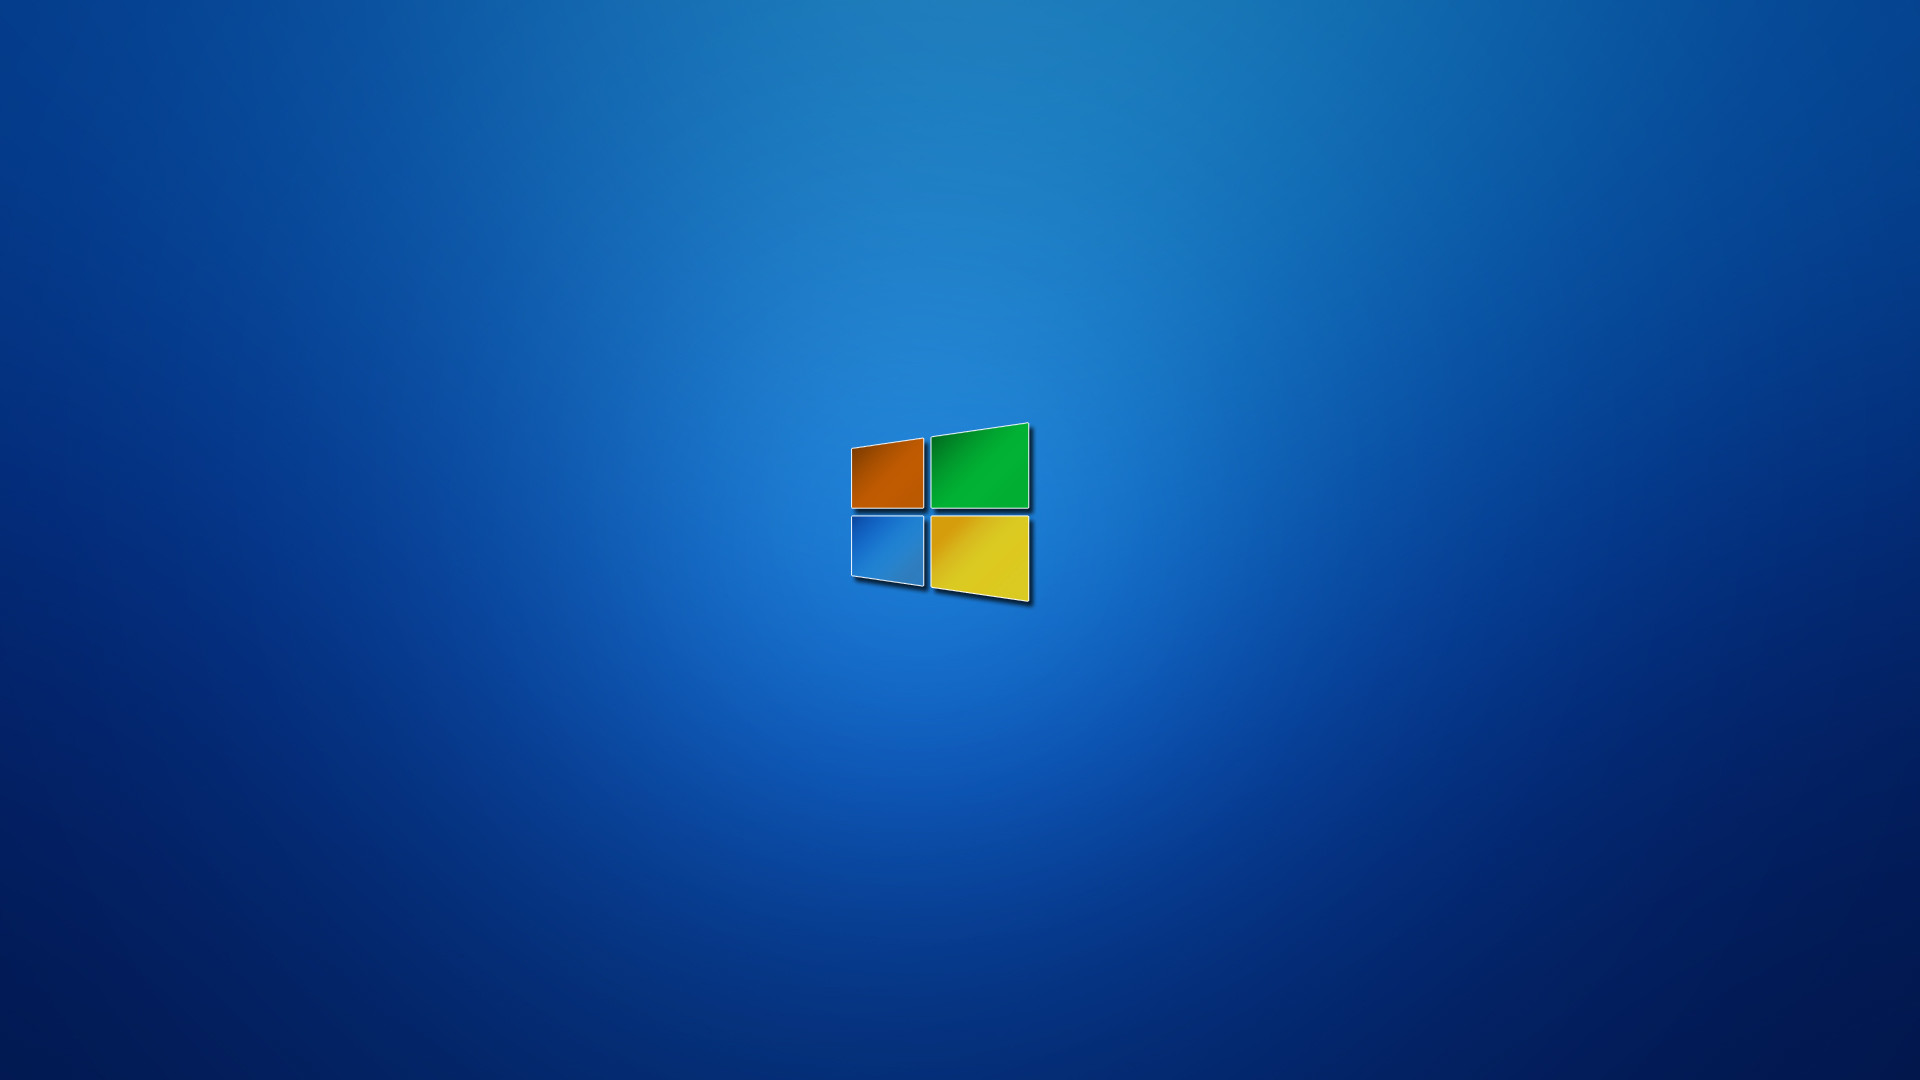 Wallpapers for windows 8 desktop 72 images - Hd wallpapers for pc windows ...